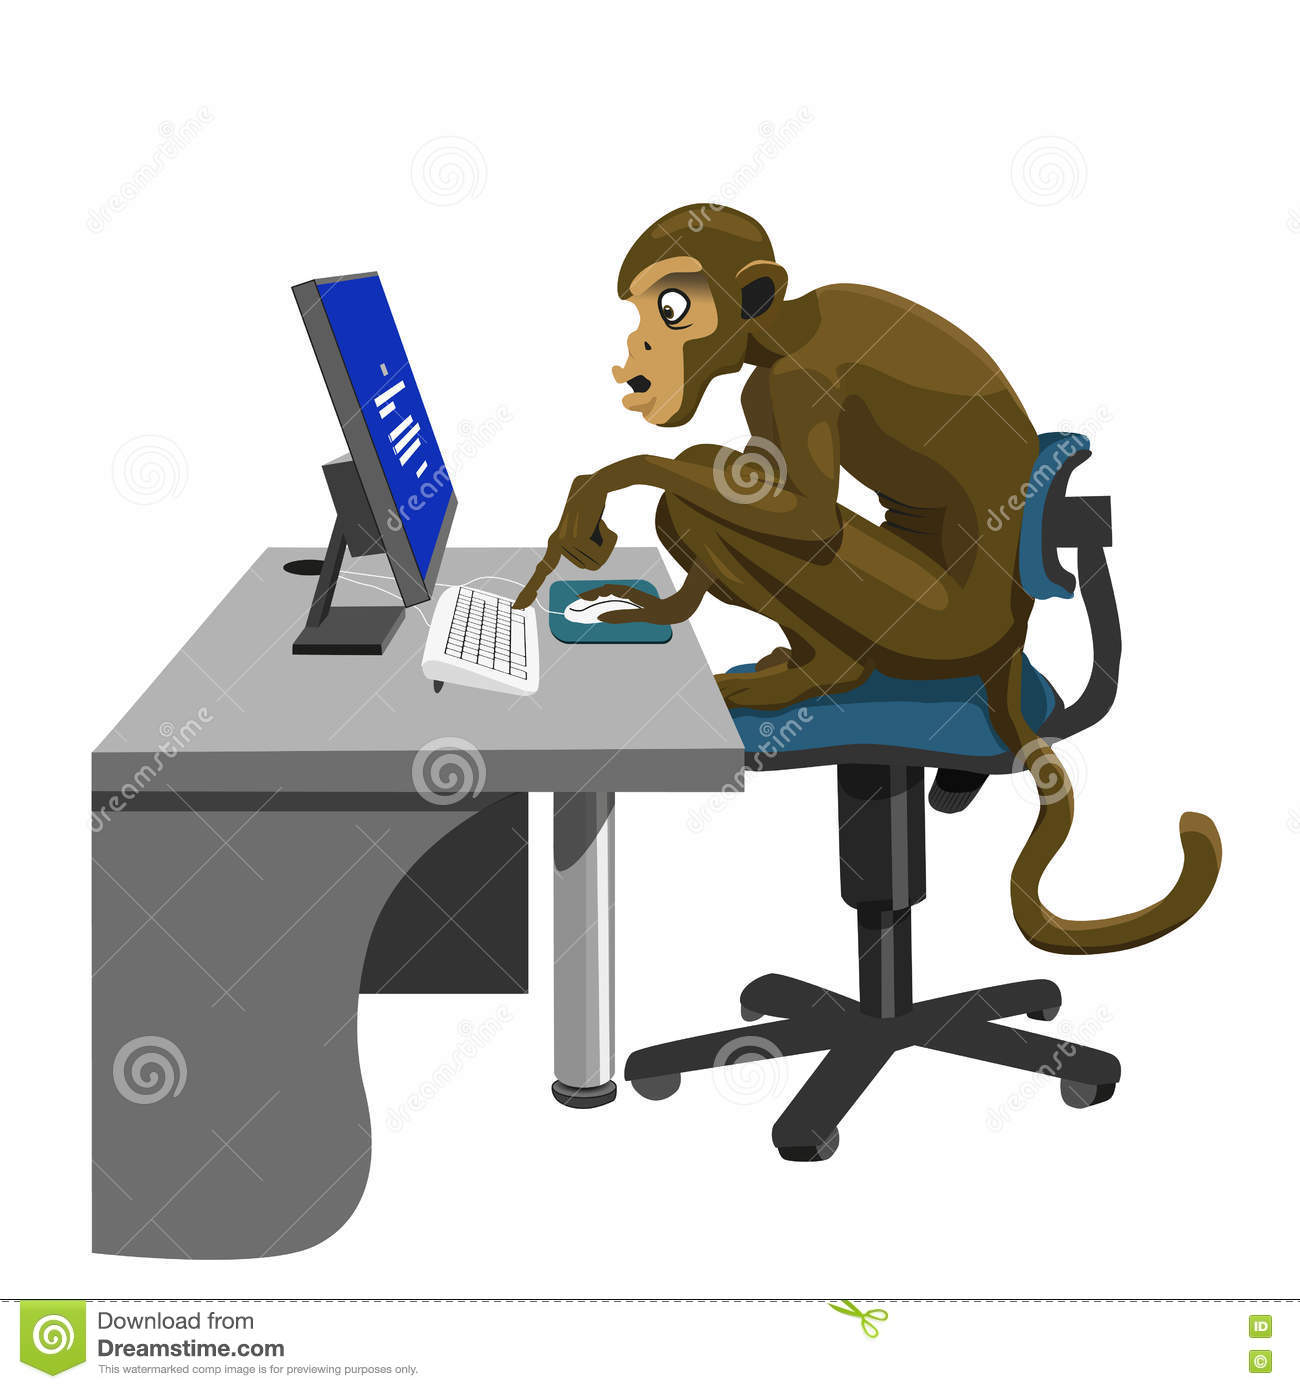 stupid-monkey-computer-error-screen-7276